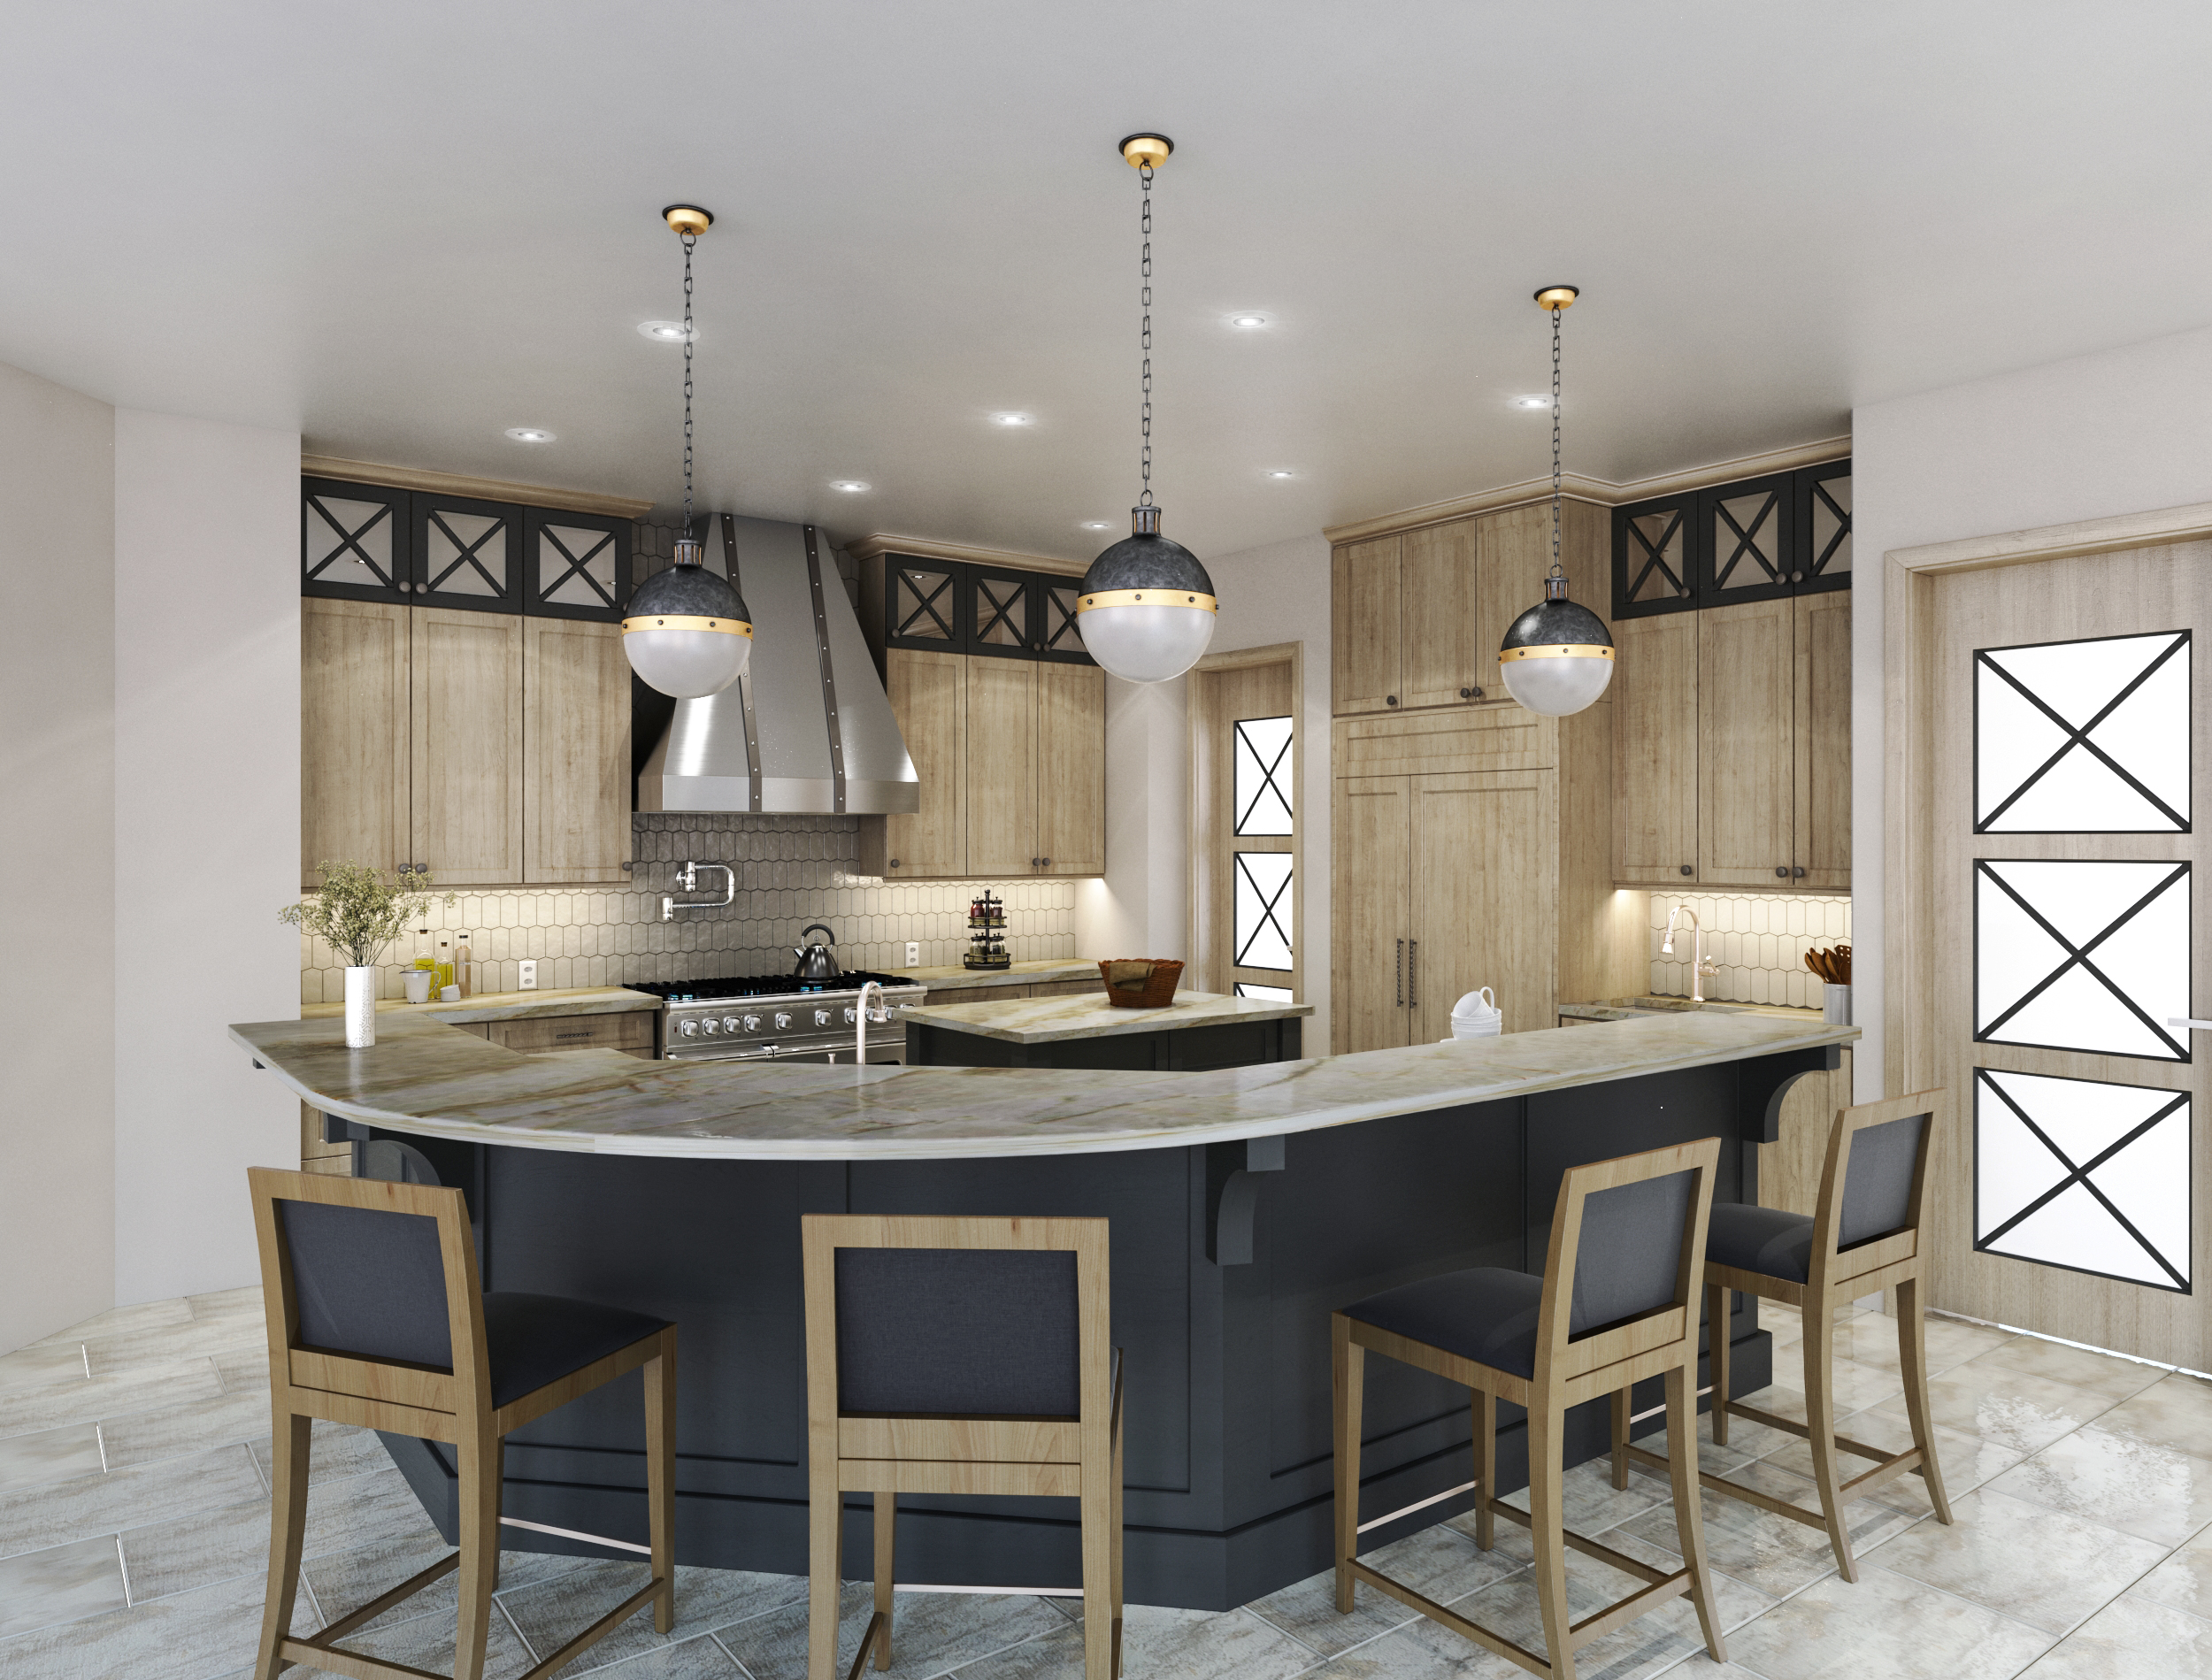 """This kitchen has a raised, 42"""" high bar, which helps to visually separate it somewhat from the large open spaces adjacent. It conceals the kitchen sink area from the main entry and formal dining room too. Carla Aston, Designer 